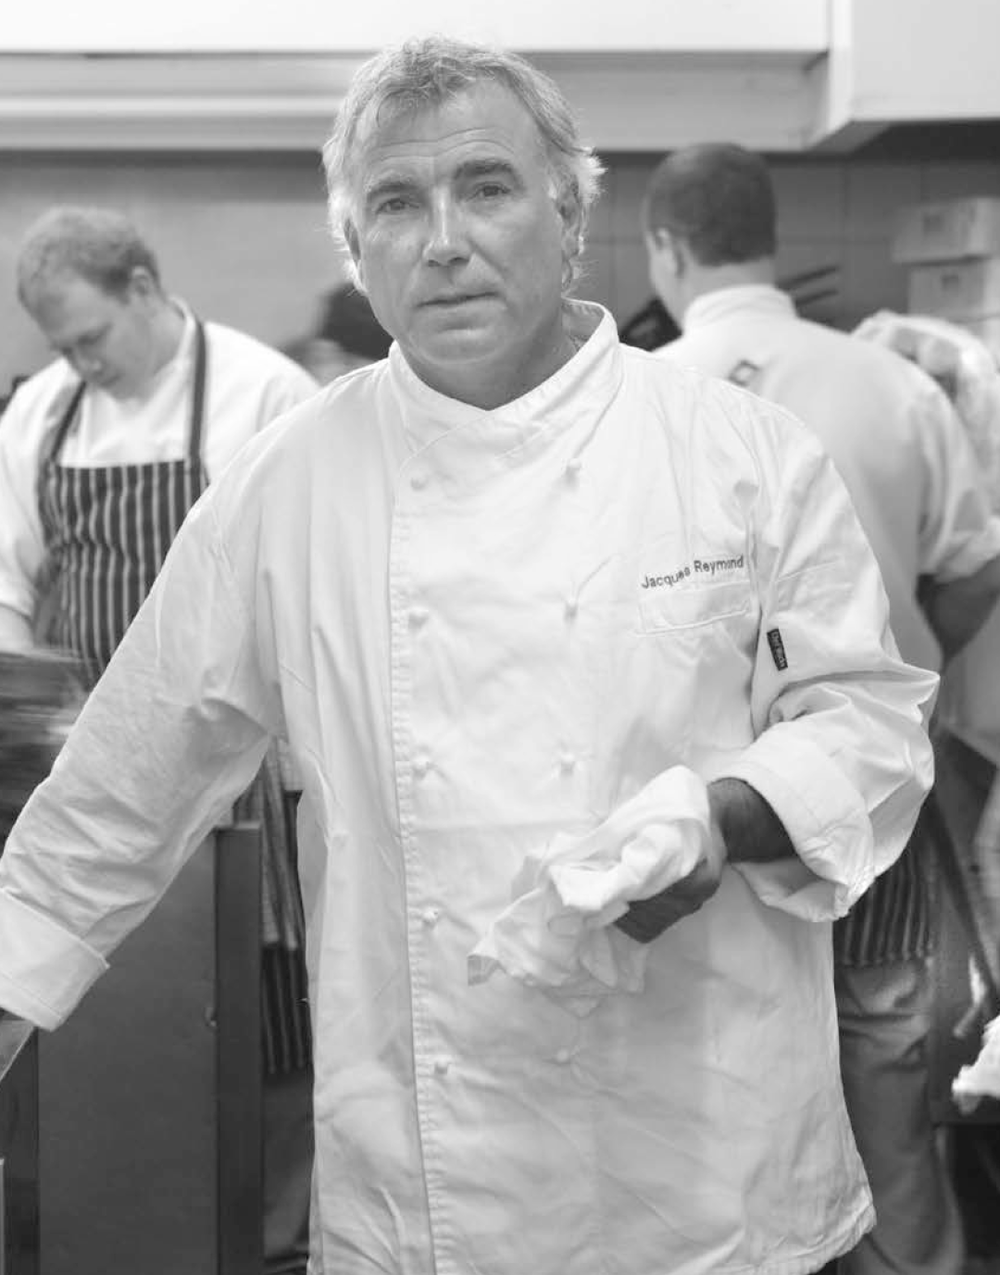 Jacques Reymond Foodservice Consultants Magazin